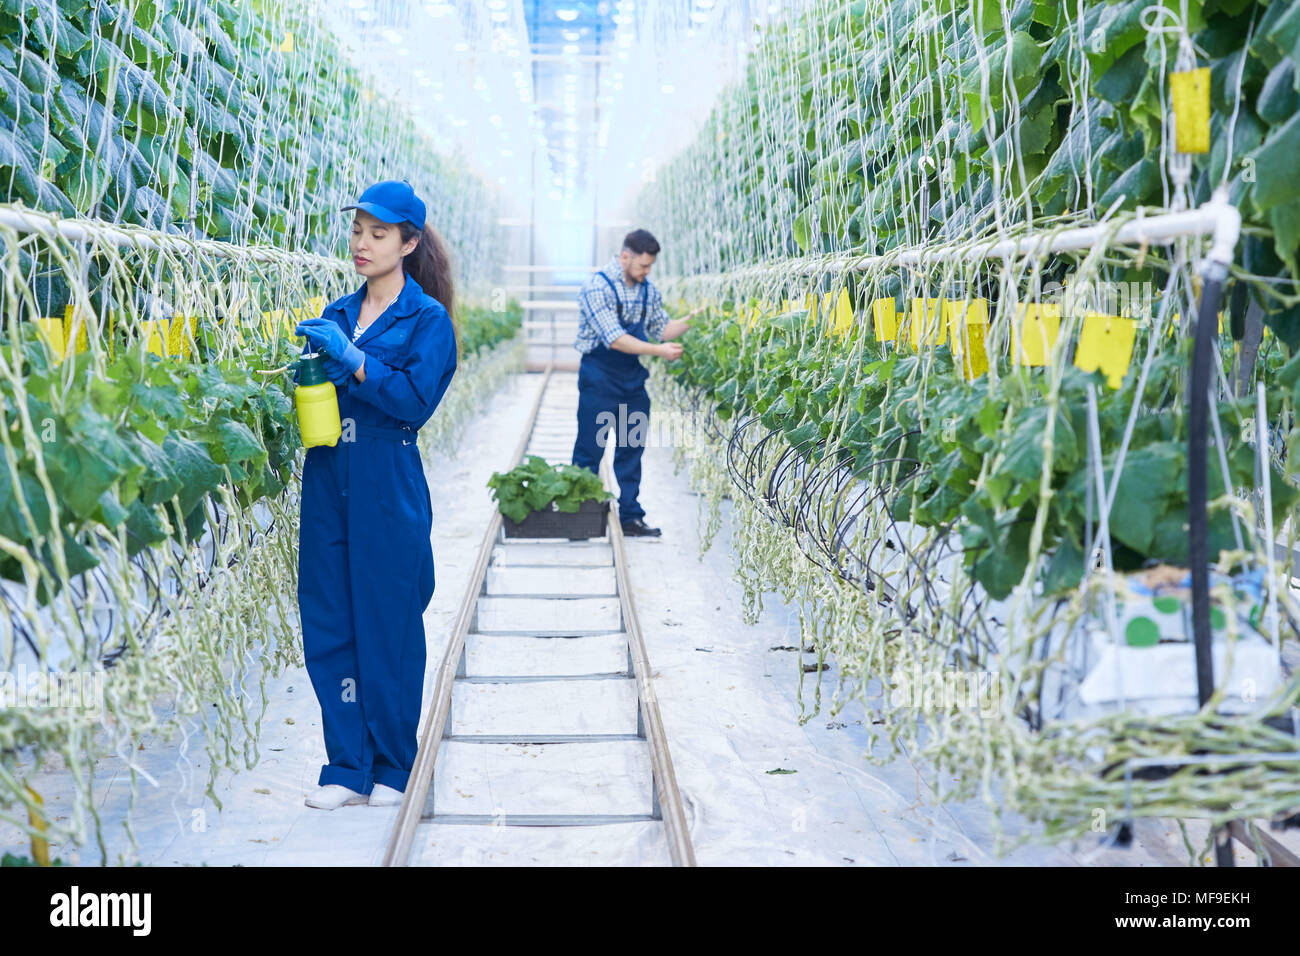 Two People Working  in Greenhouse - Stock Image